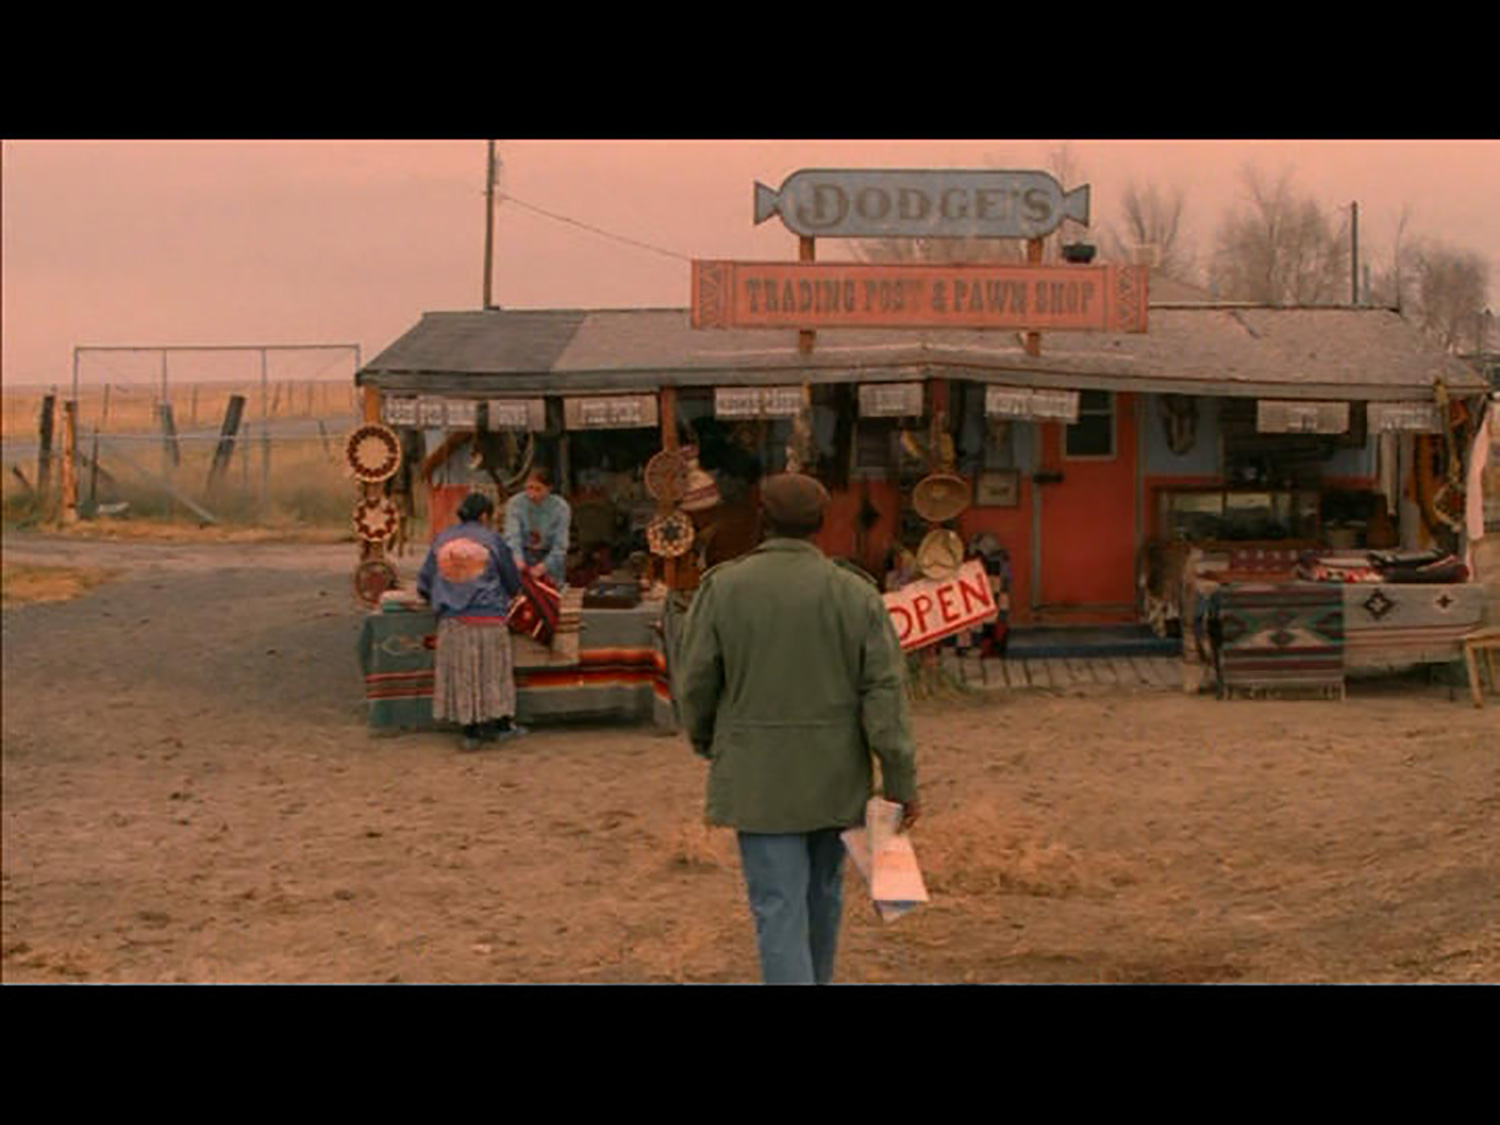 The Edge of America is an early 1980's period piece based on a true story, set on a fictionalized southwest Indian reservation. Here is Dodge's reservation store/trading post.